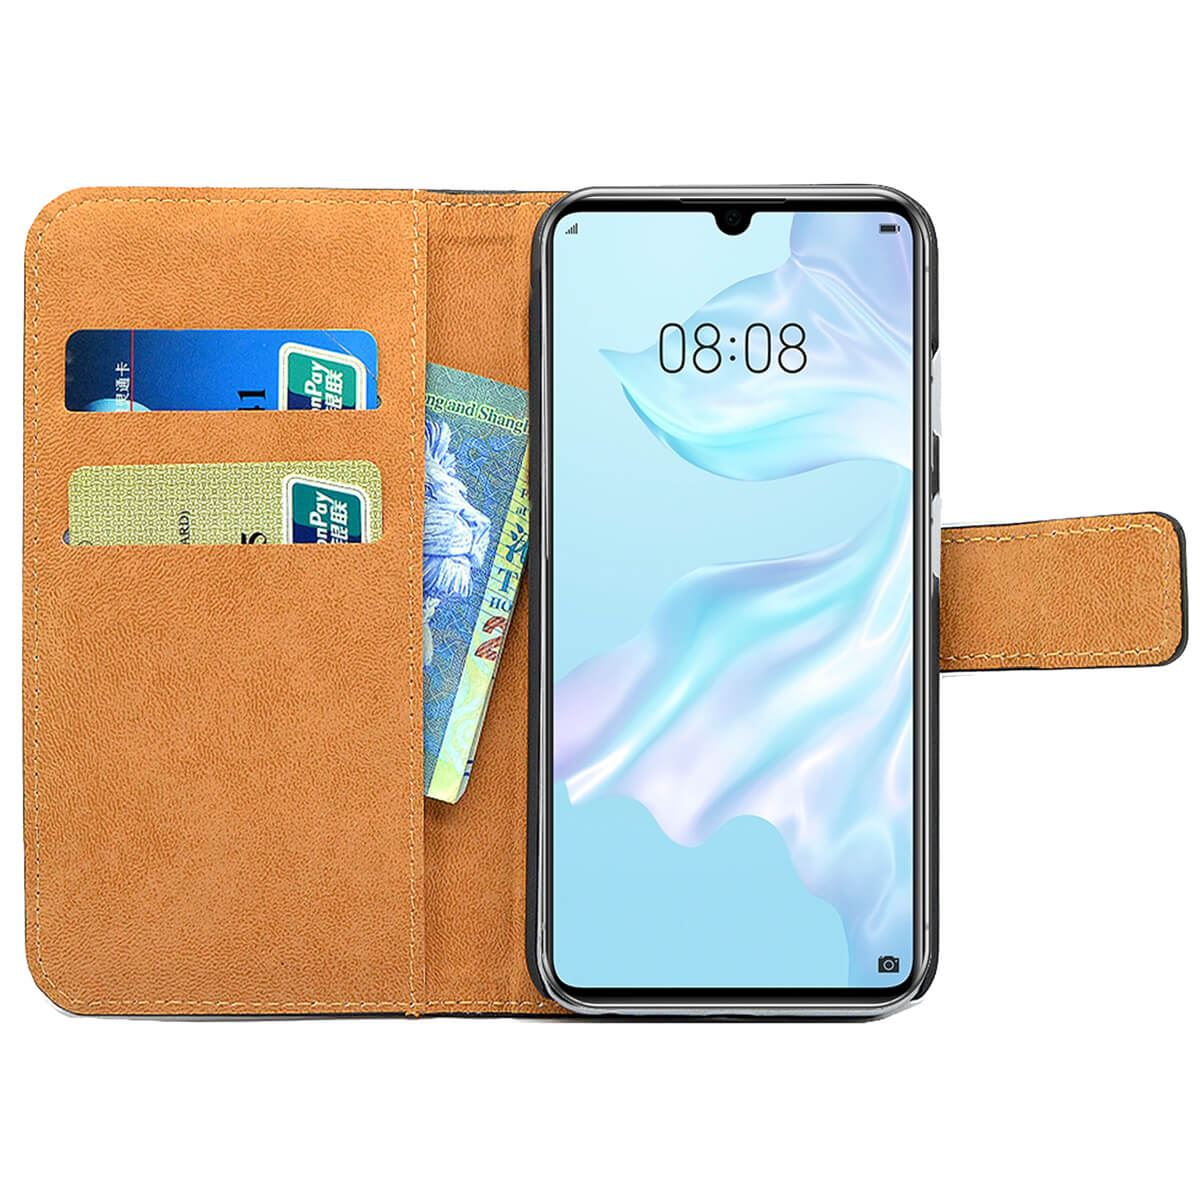 Flip-Cover-For-Huawei-P30-Lite-Pro-Leather-Wallet-Style-With-Magnetic-Closure thumbnail 4